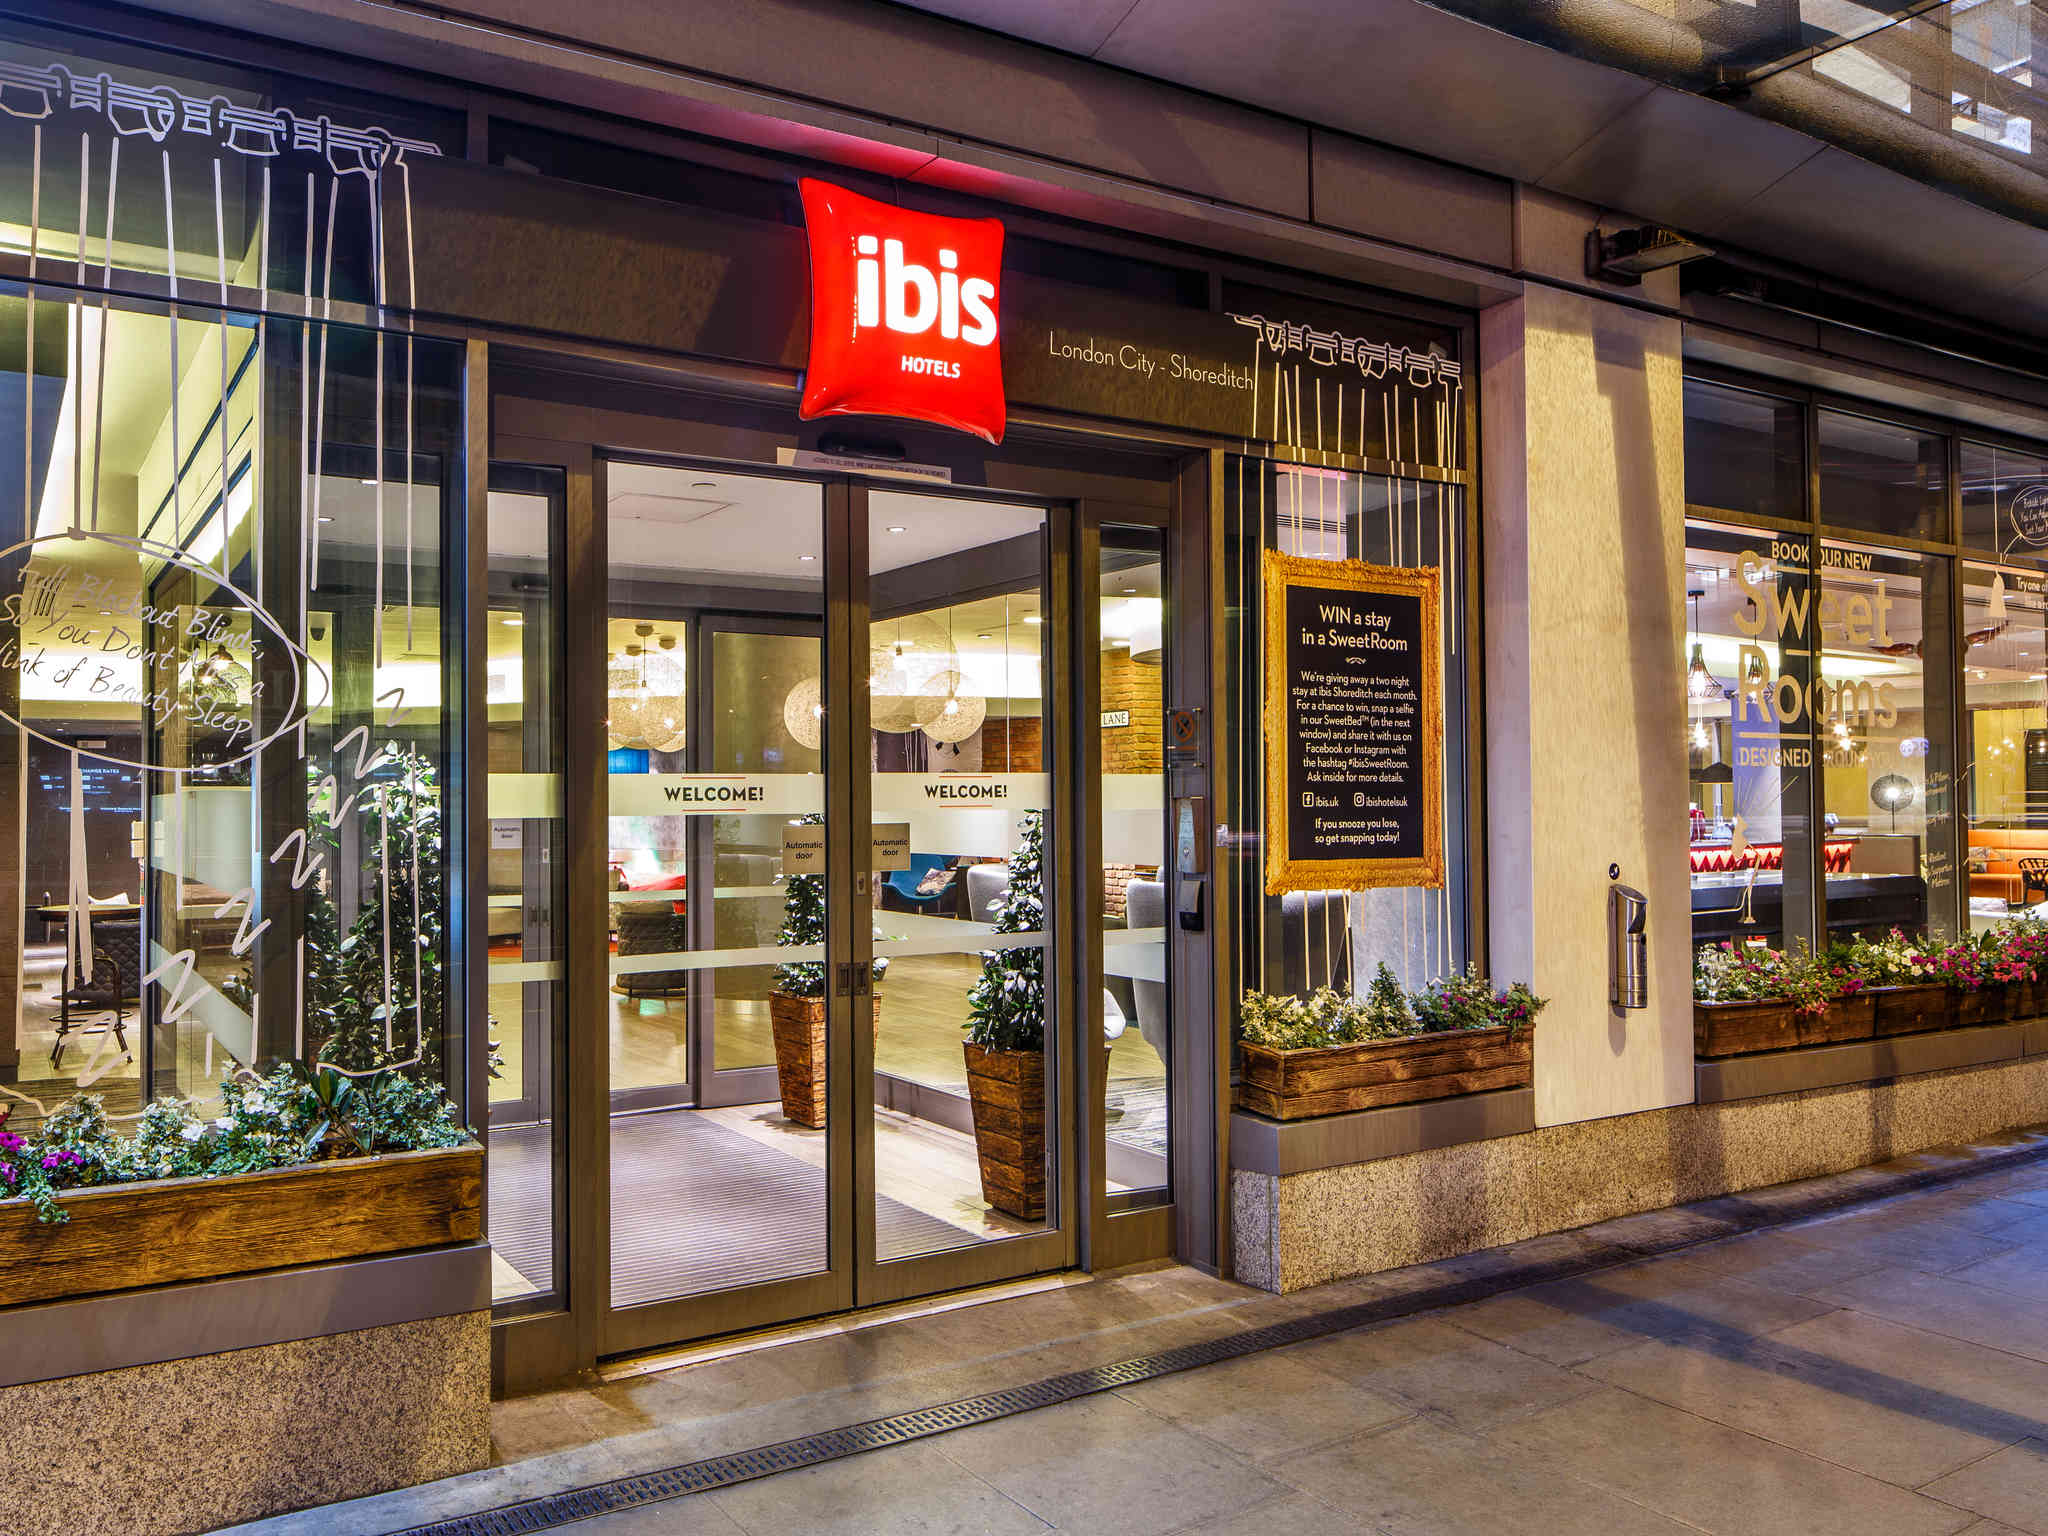 Hotel - ibis London City - Shoreditch